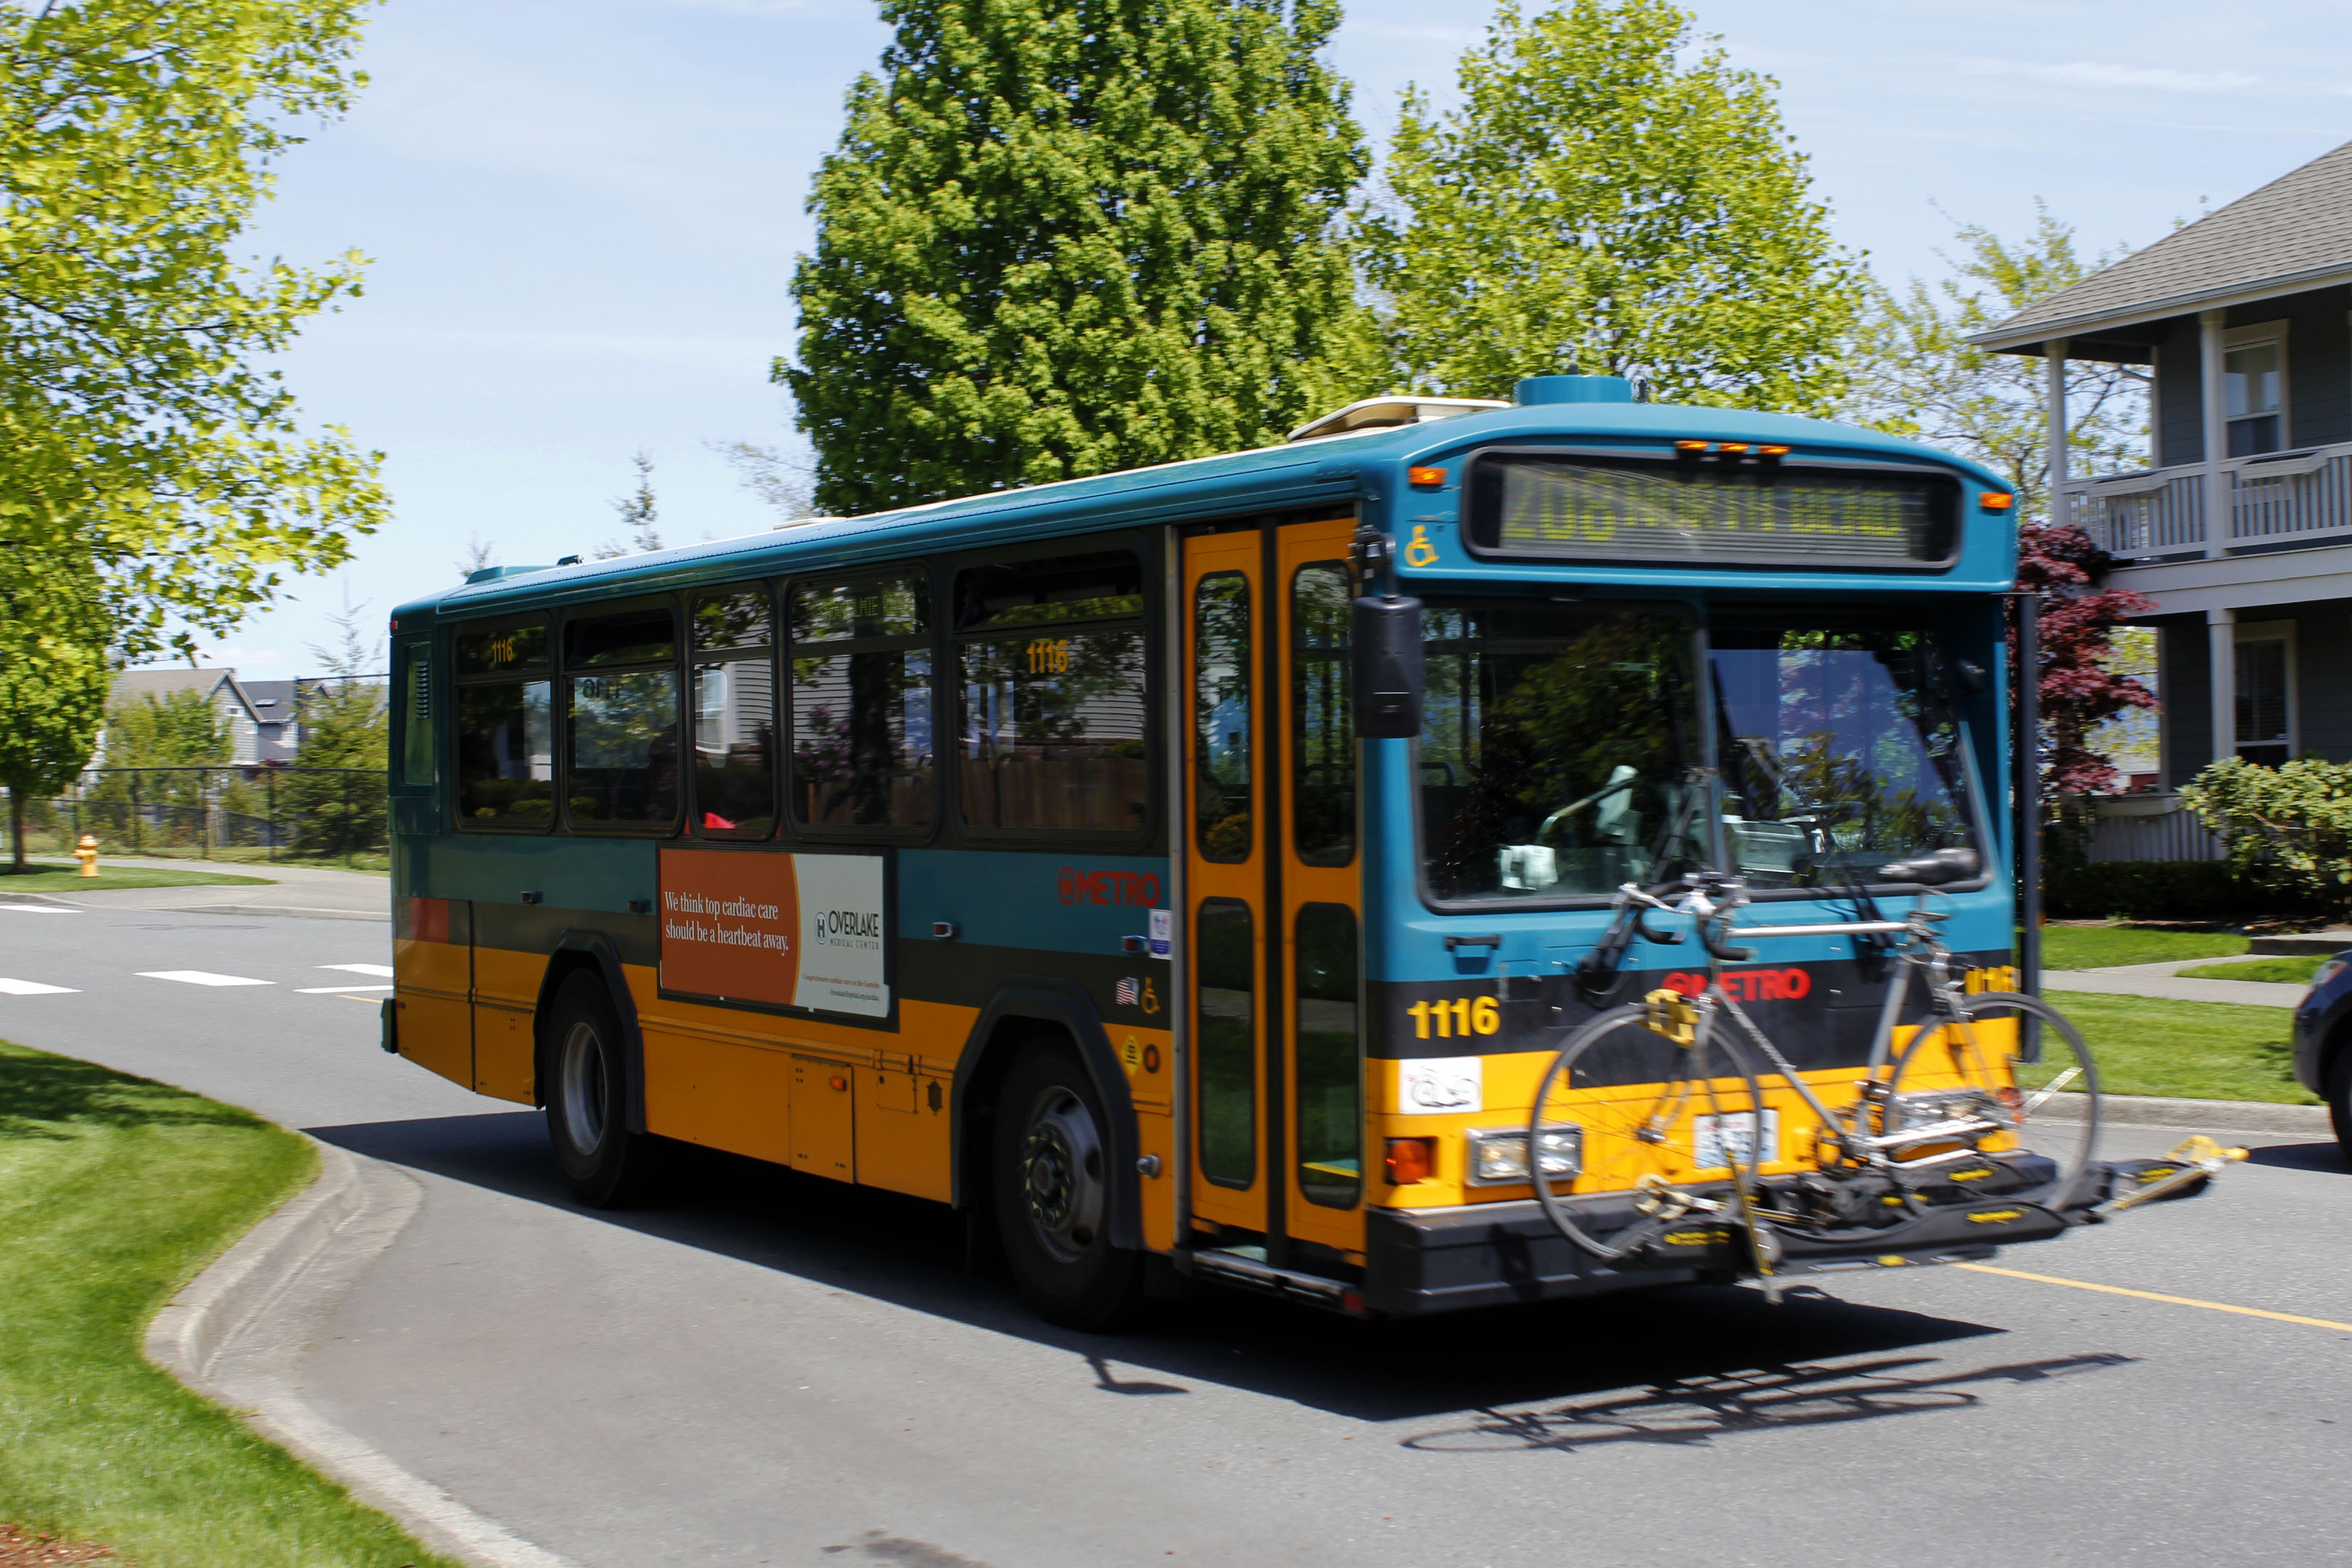 This is a picture of a Metro Bus in Snoqualmie.